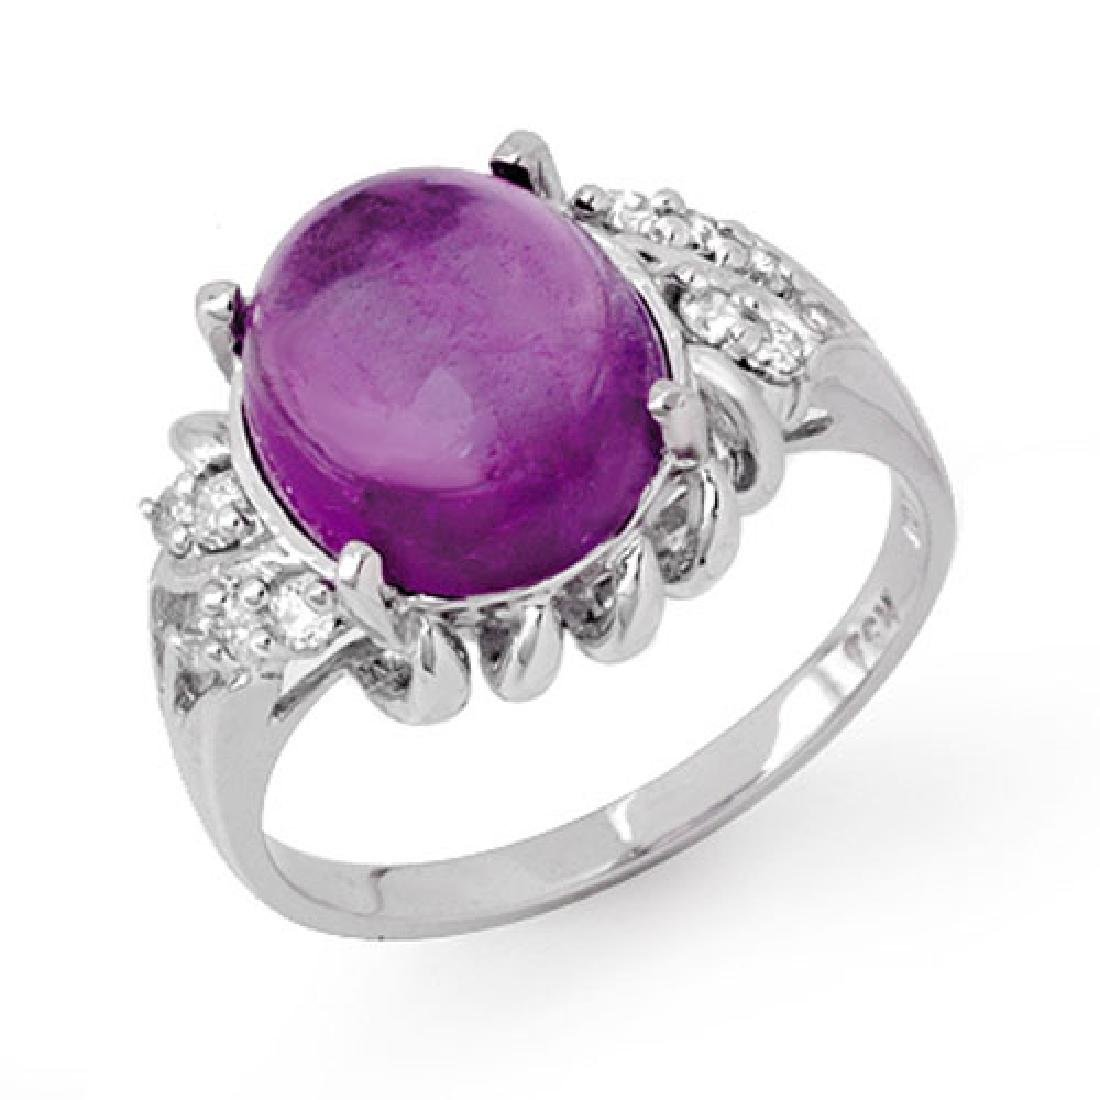 4.25 CTW Amethyst & Diamond Ring 10K White Gold